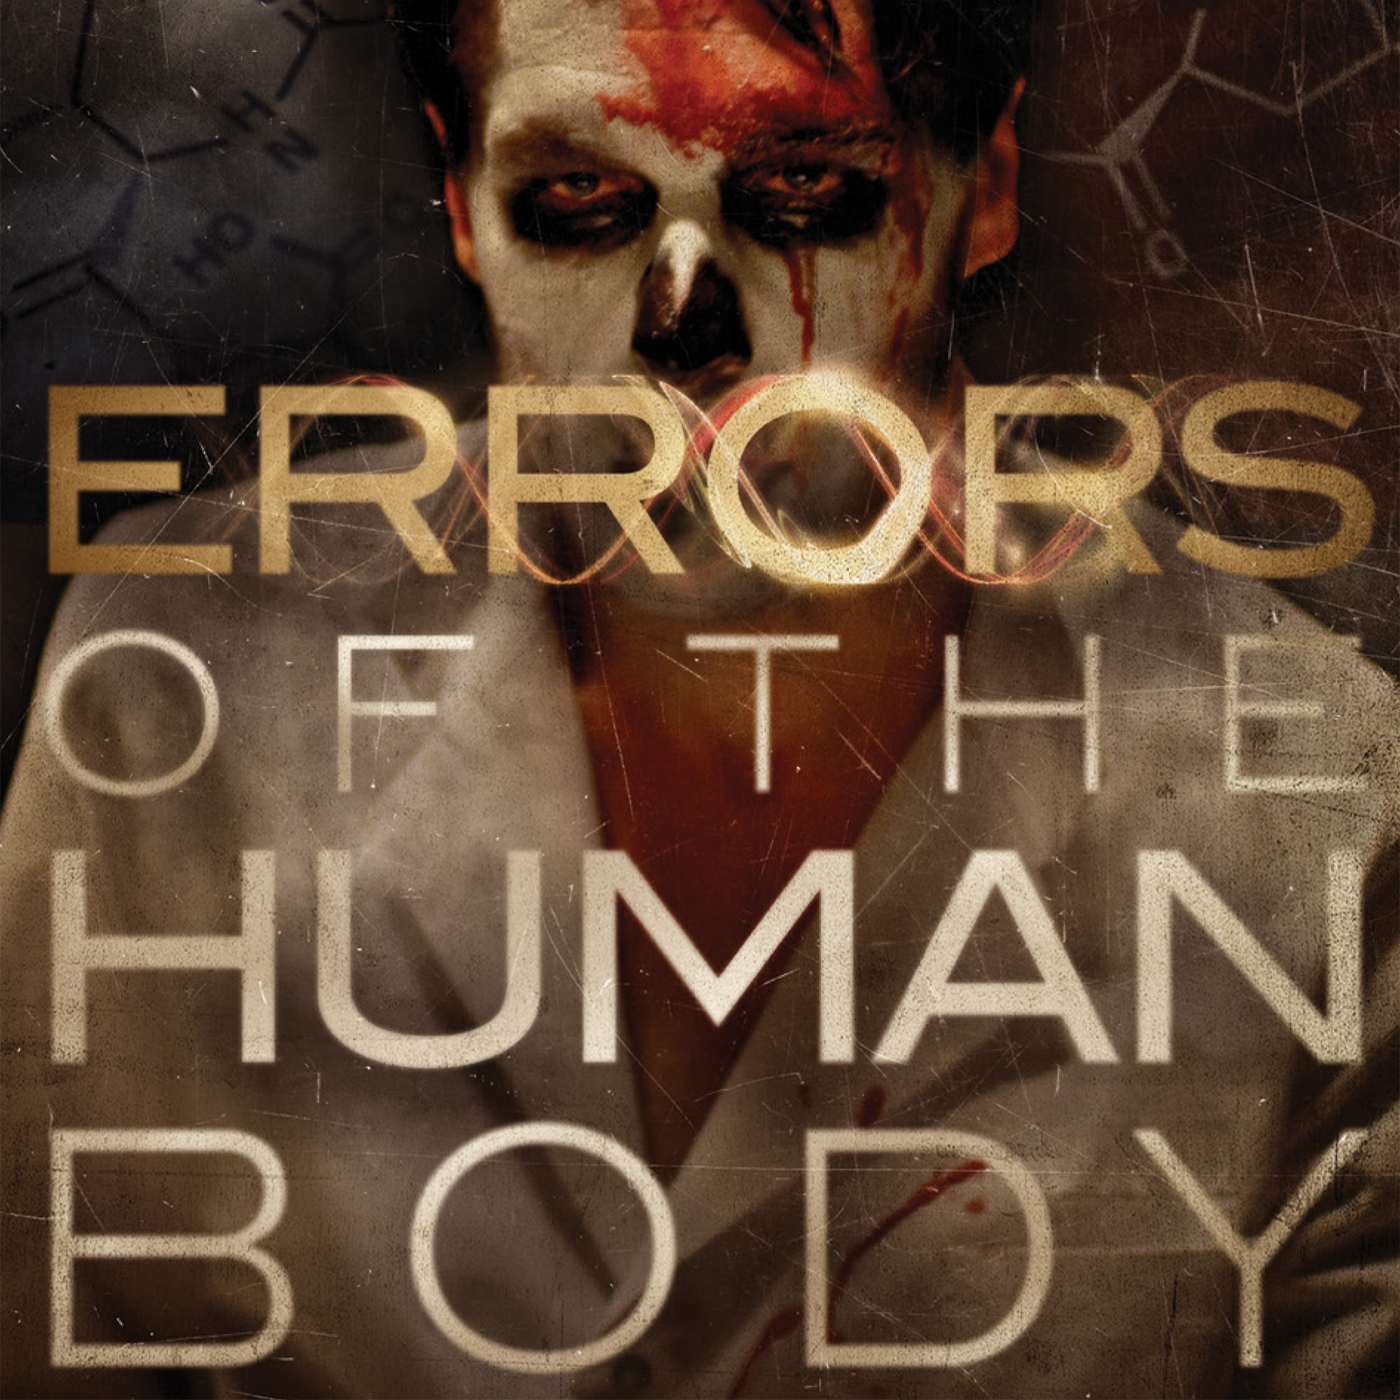 Errors of the Human Body: Free Preview